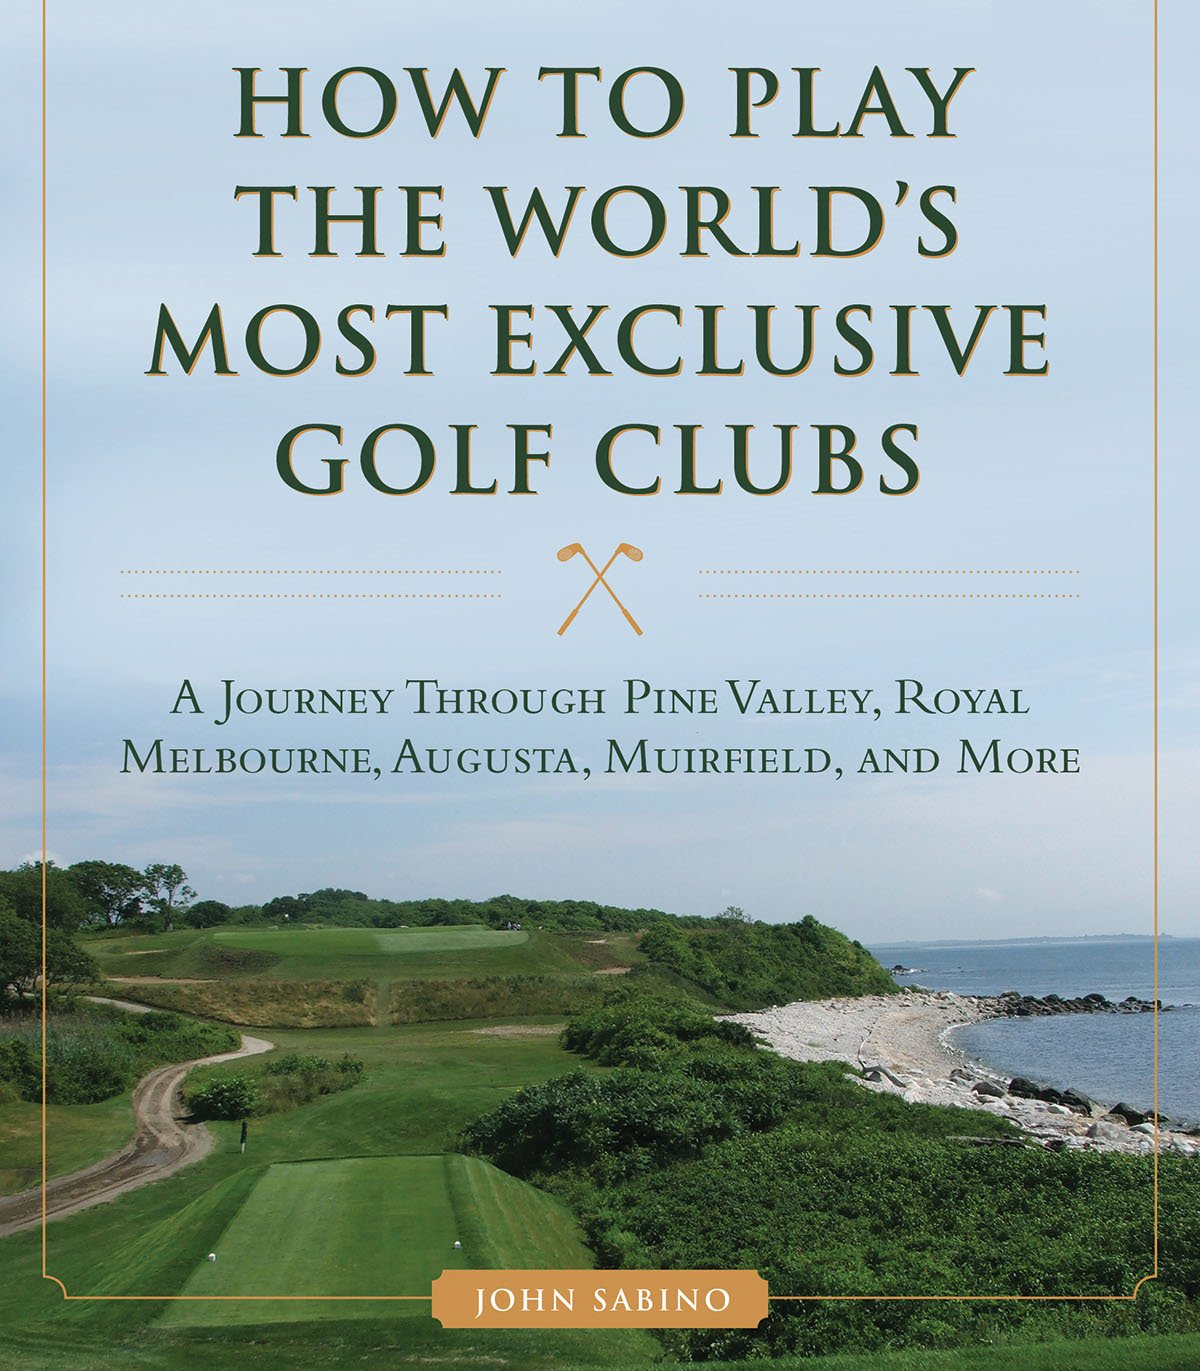 Image result for how to play the world's most exclusive golf clubs